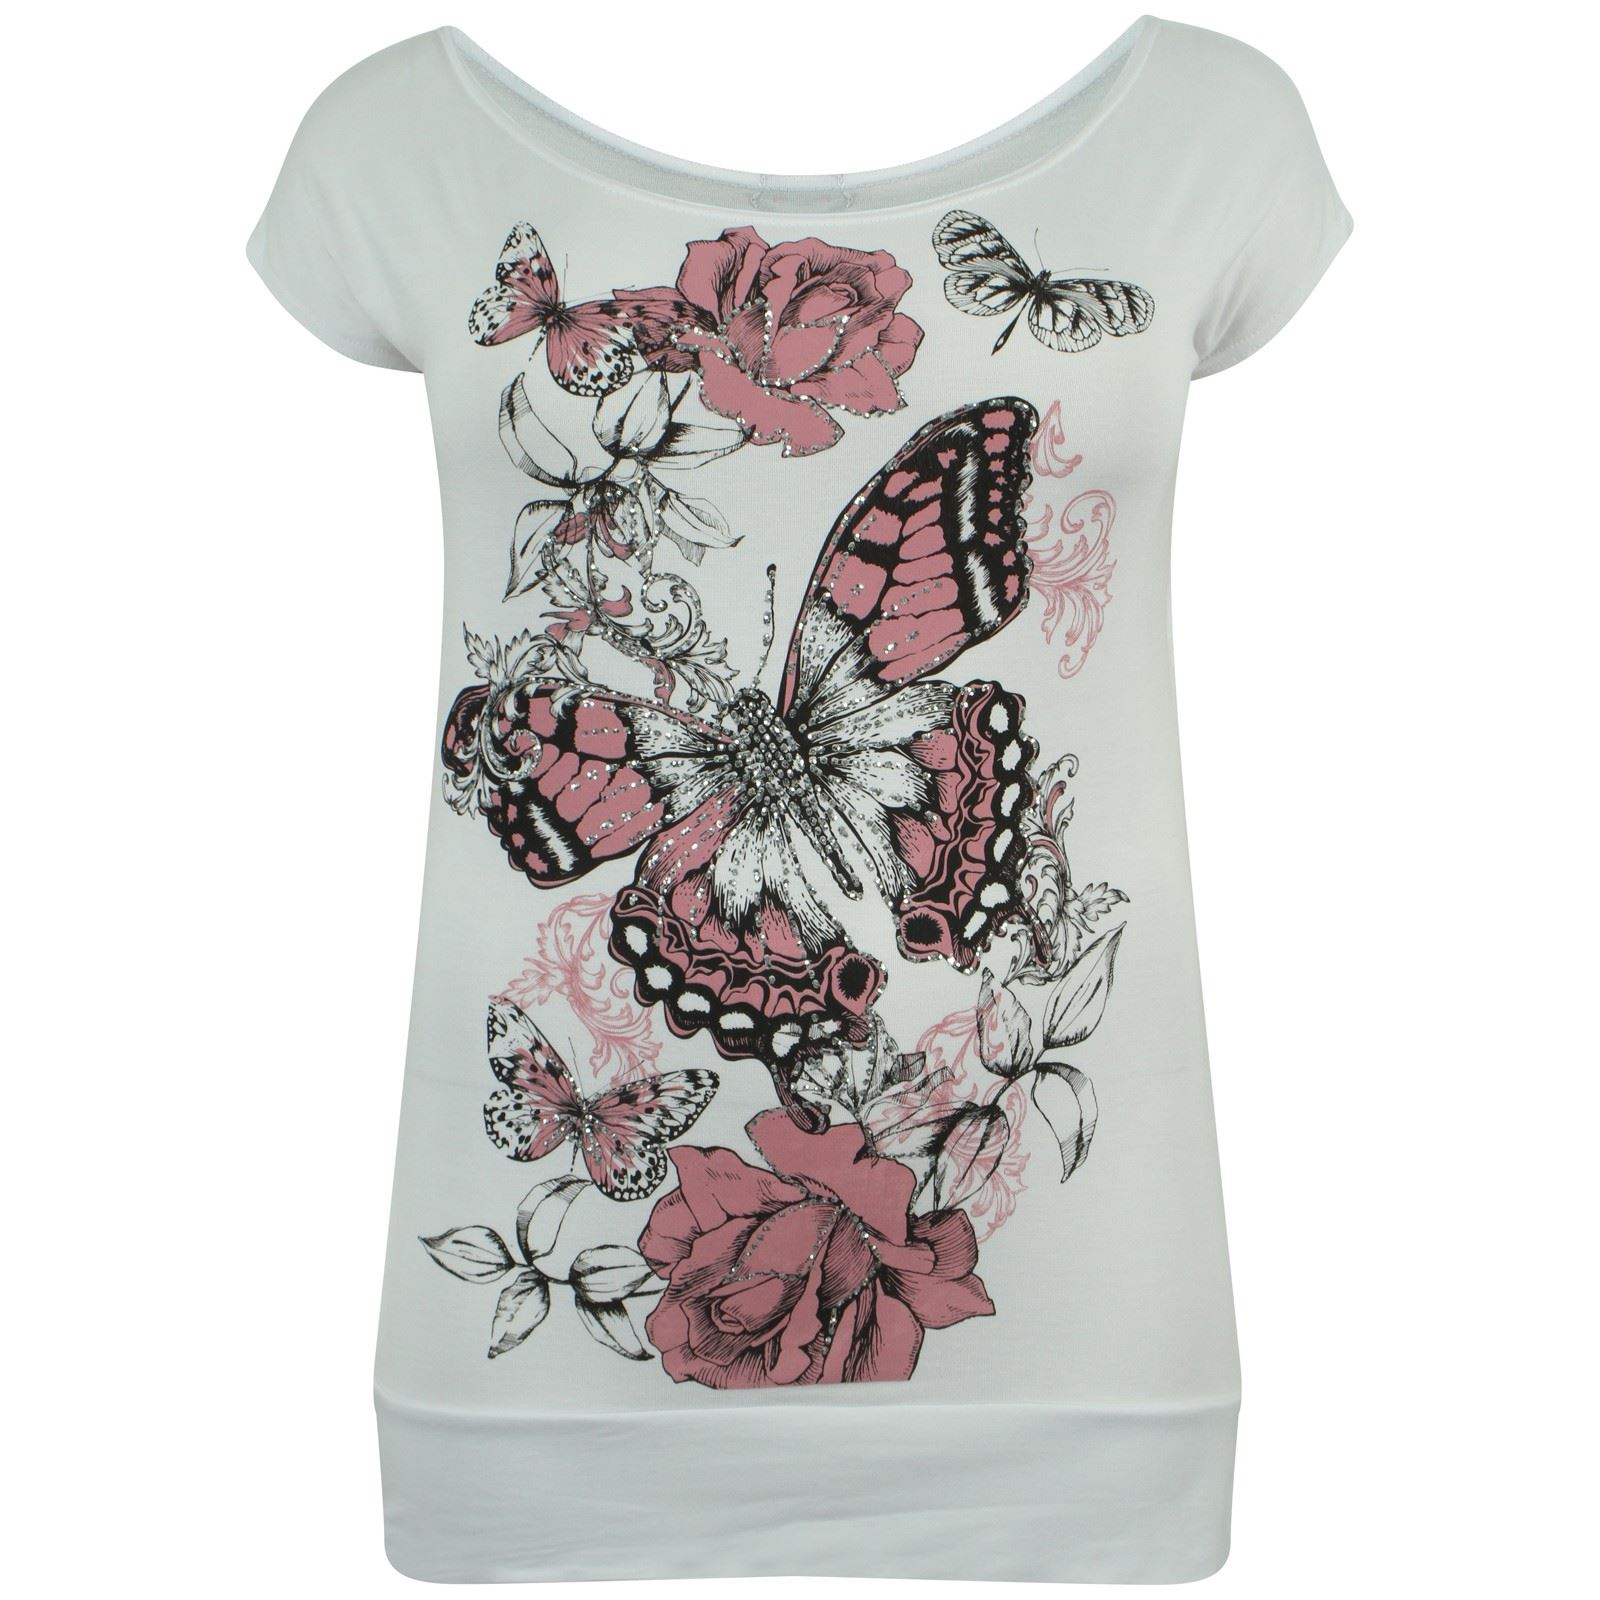 Shop for butterfly womens tops online at Target. Free shipping on purchases over $35 and save 5% every day with your Target REDcard.